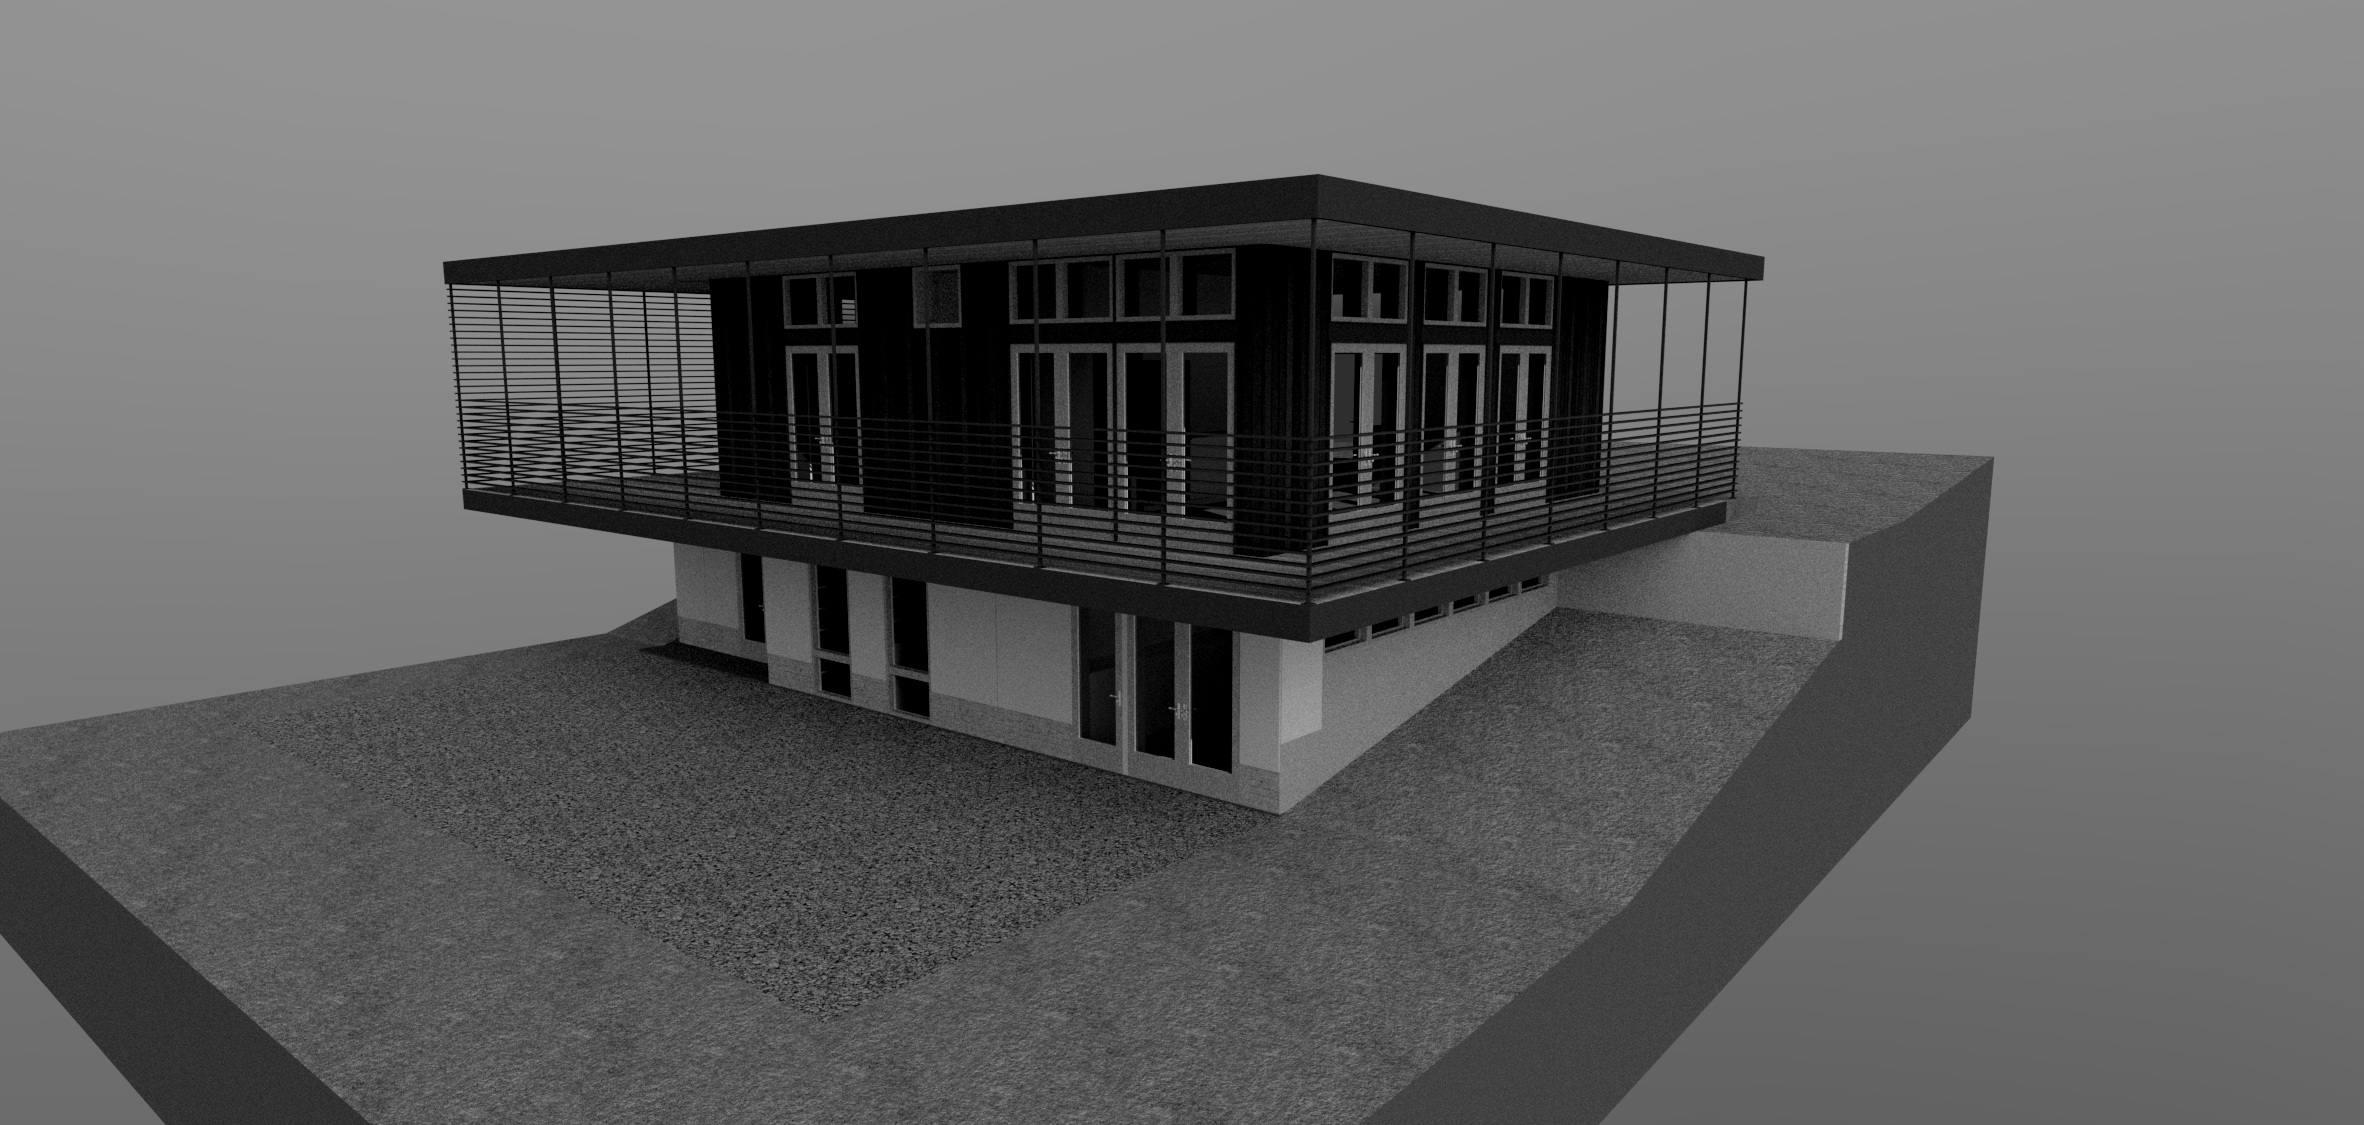 RESIDENCE M - phase : schematic design